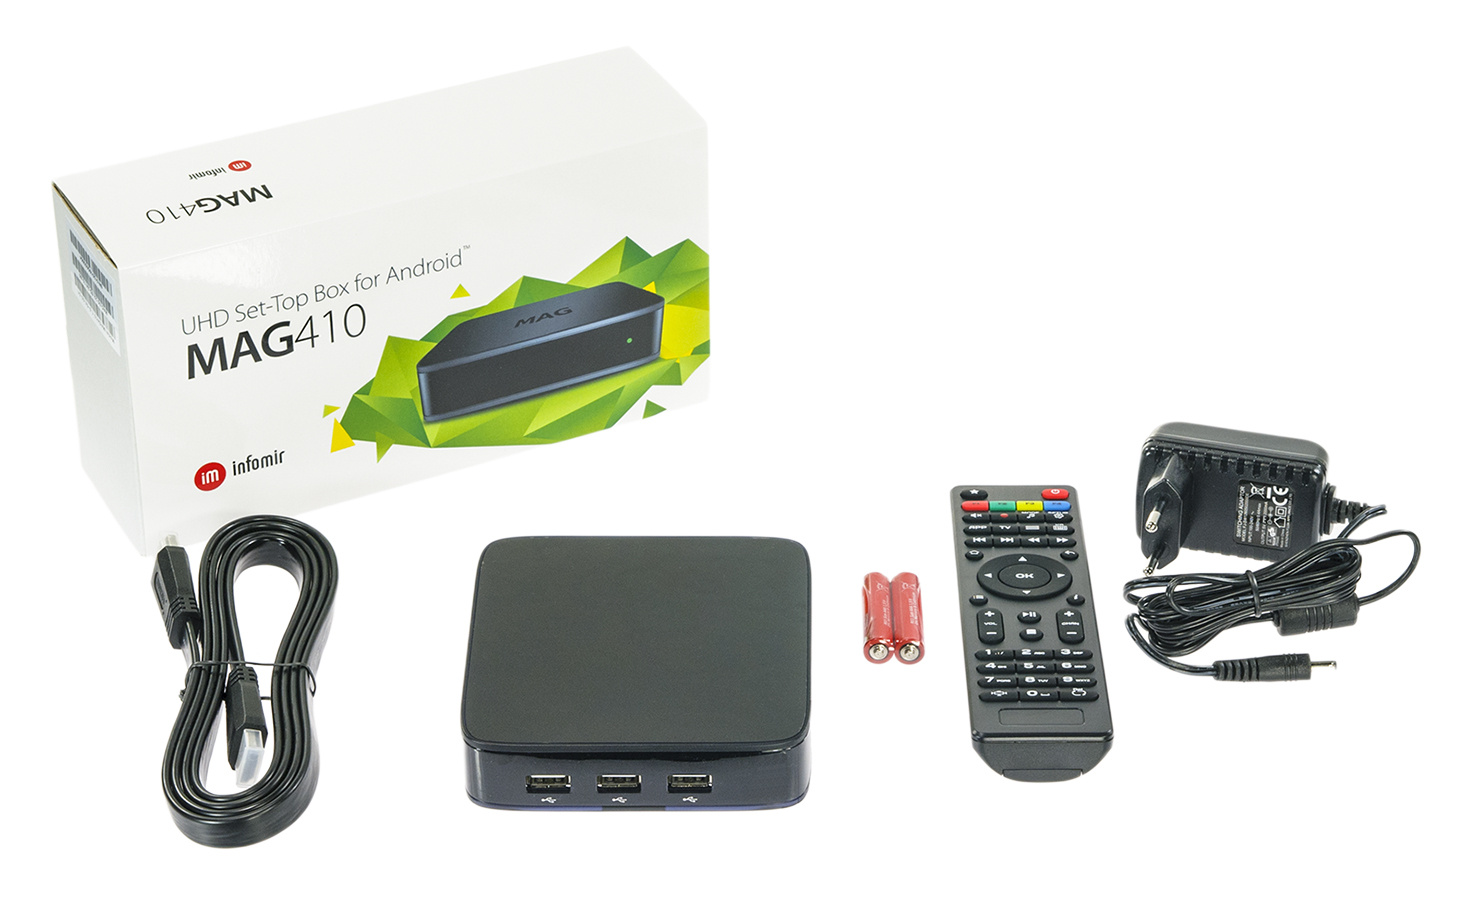 MAG 410 IPTV Set Top Box with Android Image | Metro Solutions